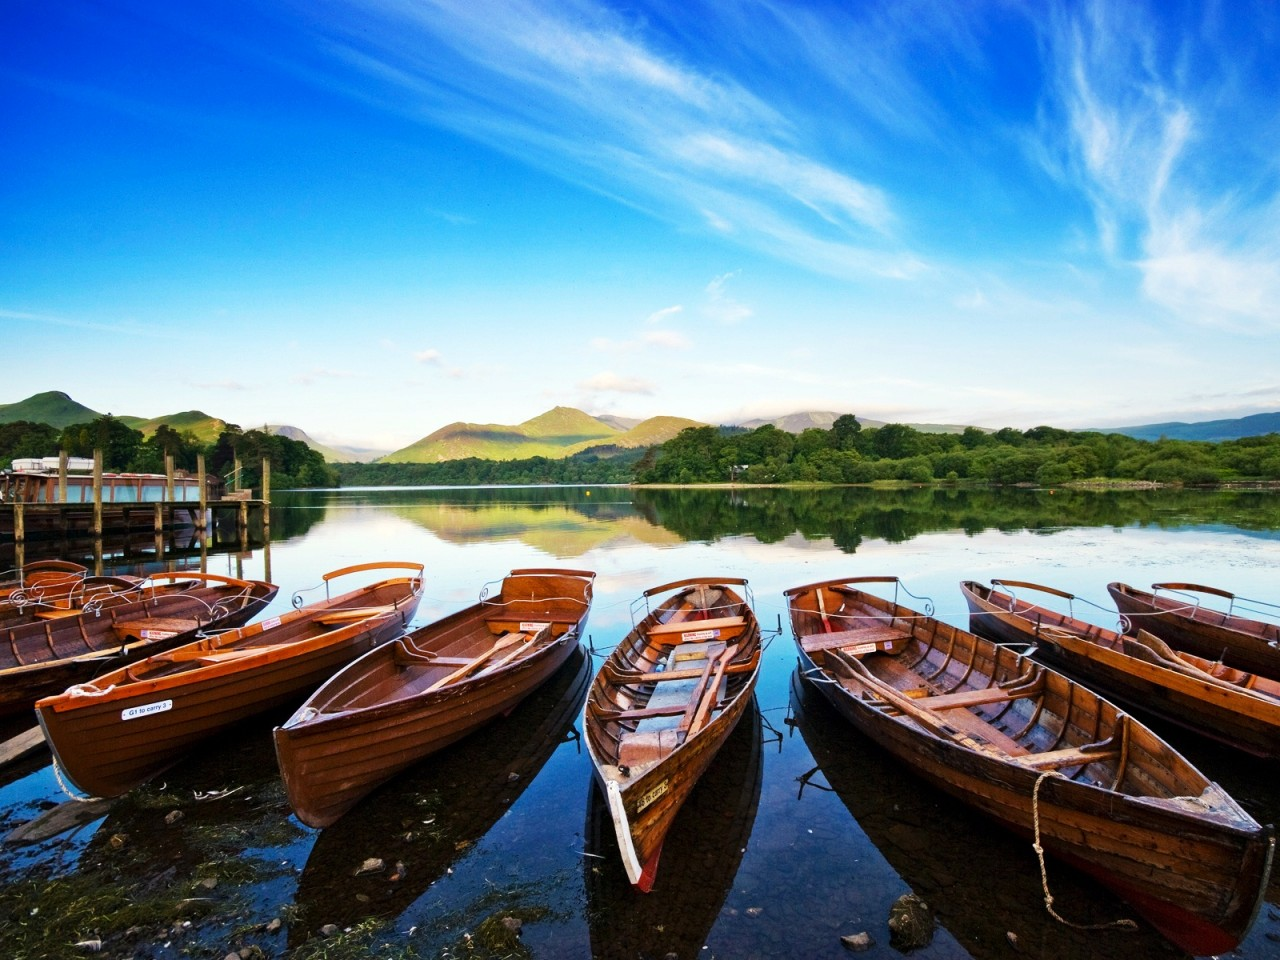 3d Parallel Wallpaper Keswick In The Lake District Wallpapers Hd Wallpapers